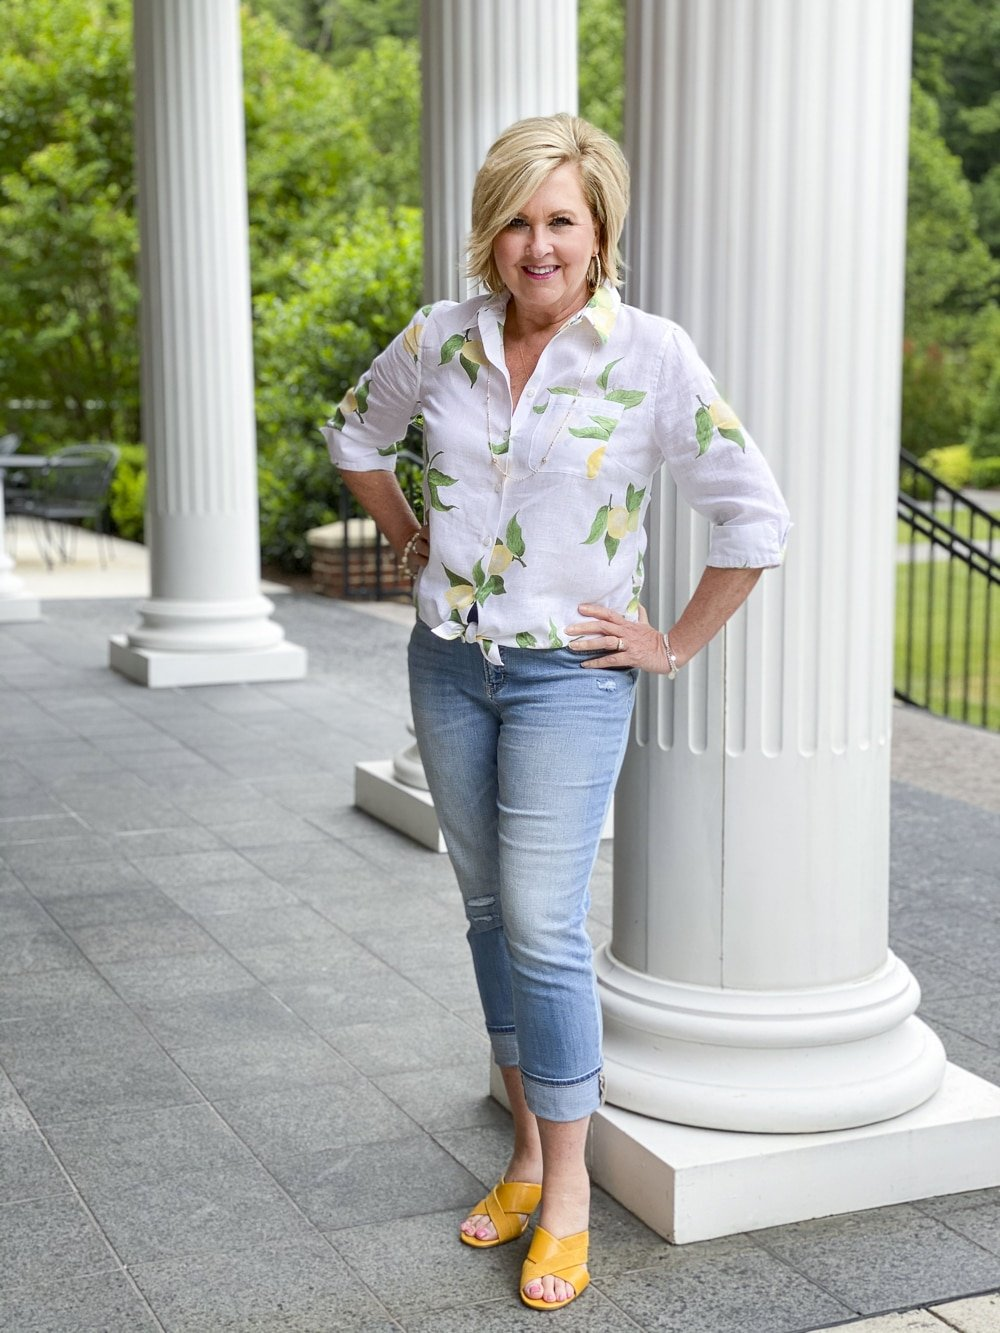 Fashion Blogger 50 Is Not Old is wearing a white button down shirt with yellow lemons, a pair of distressed girlfriend jeans, and mustard yellow block heel sandals